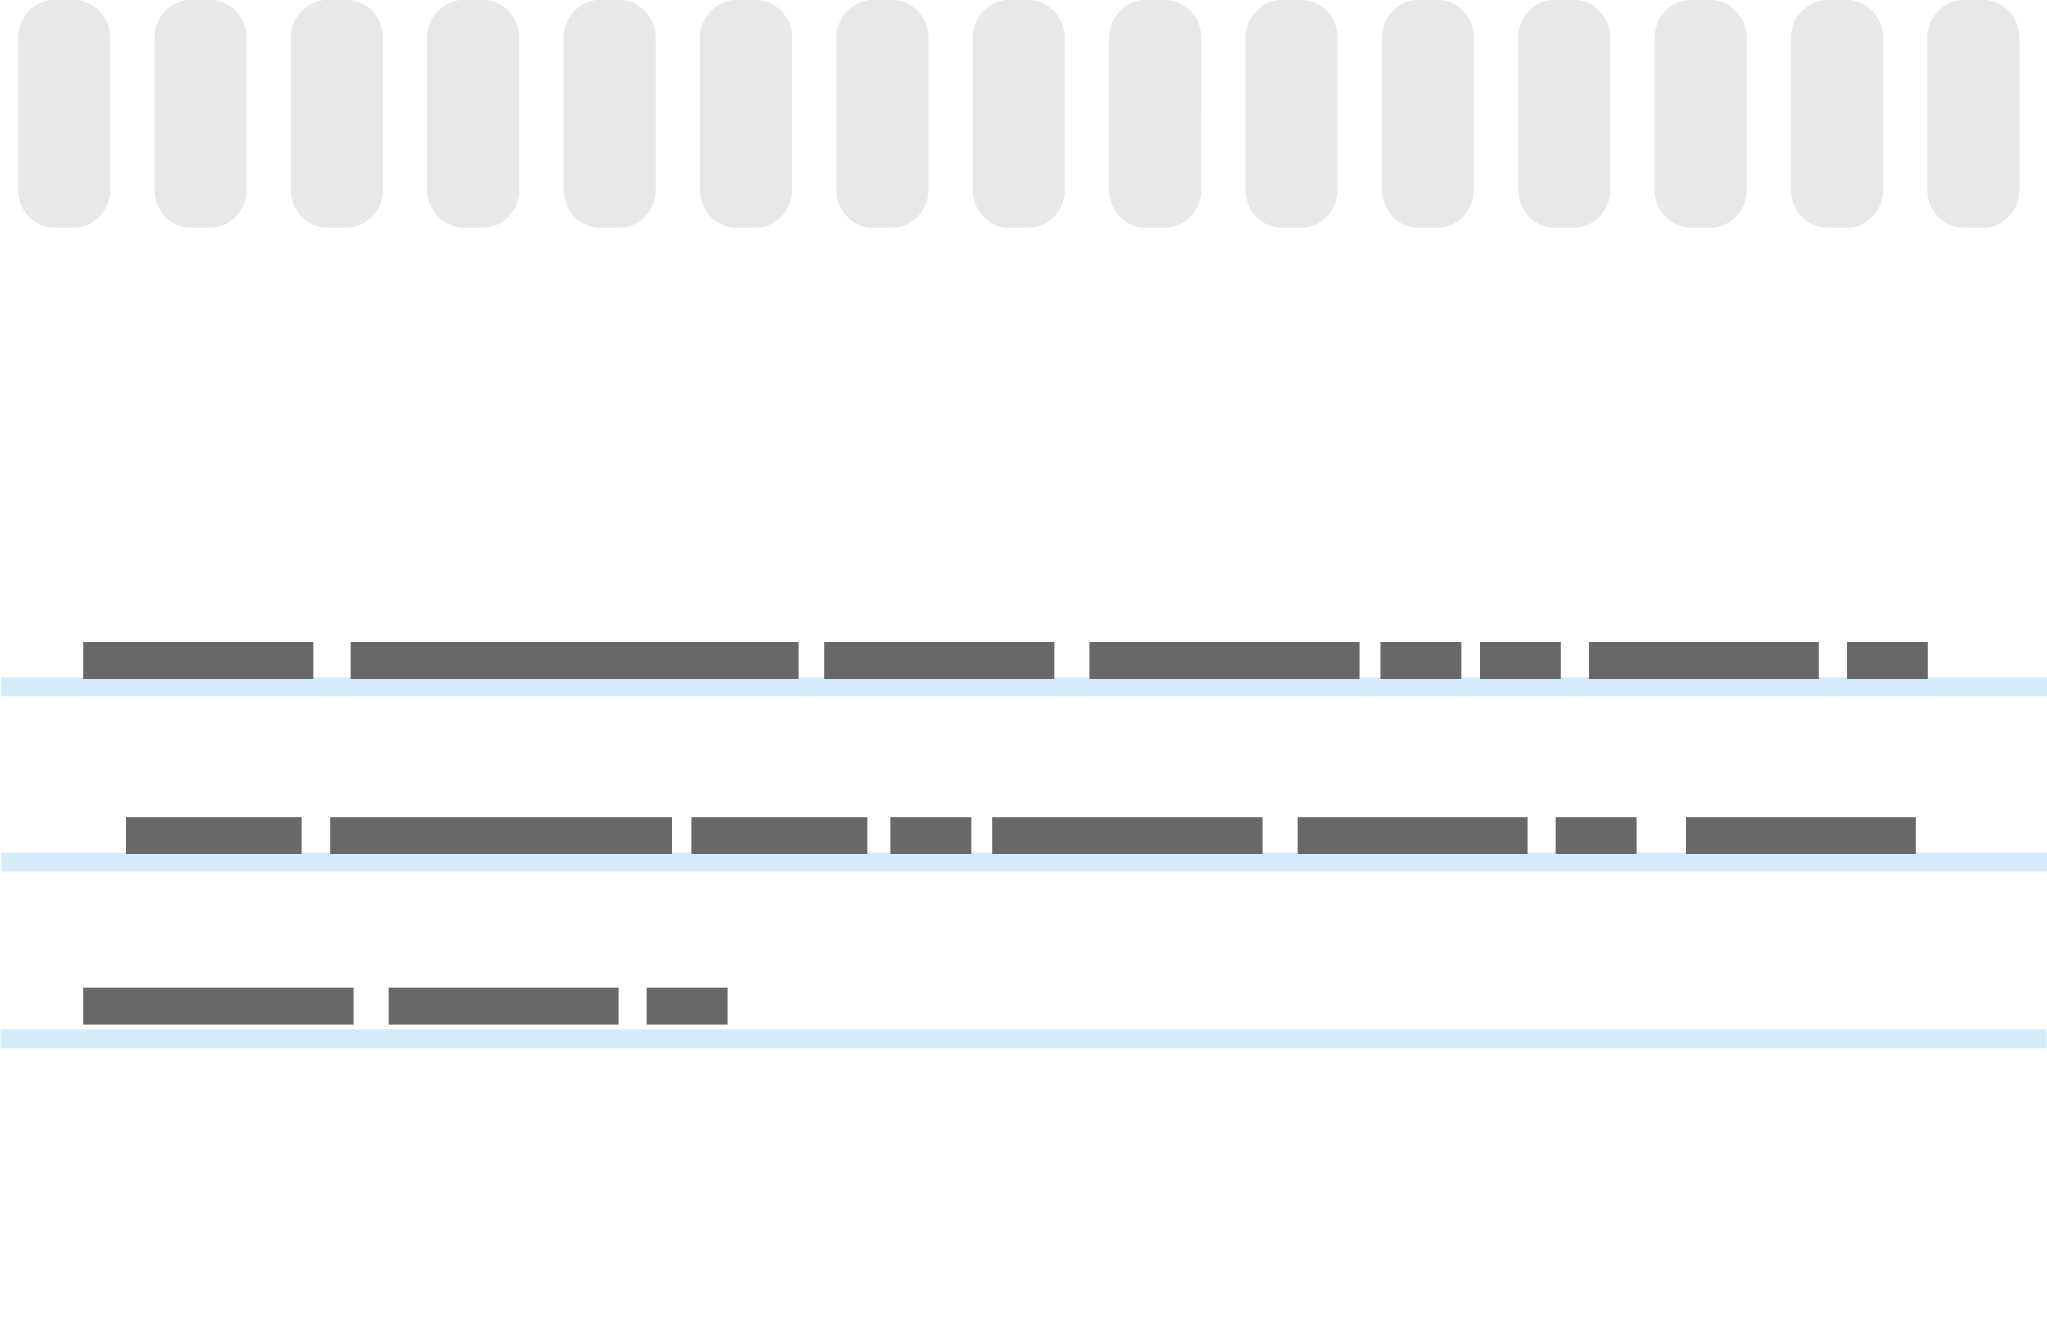 An illustration of a notebook